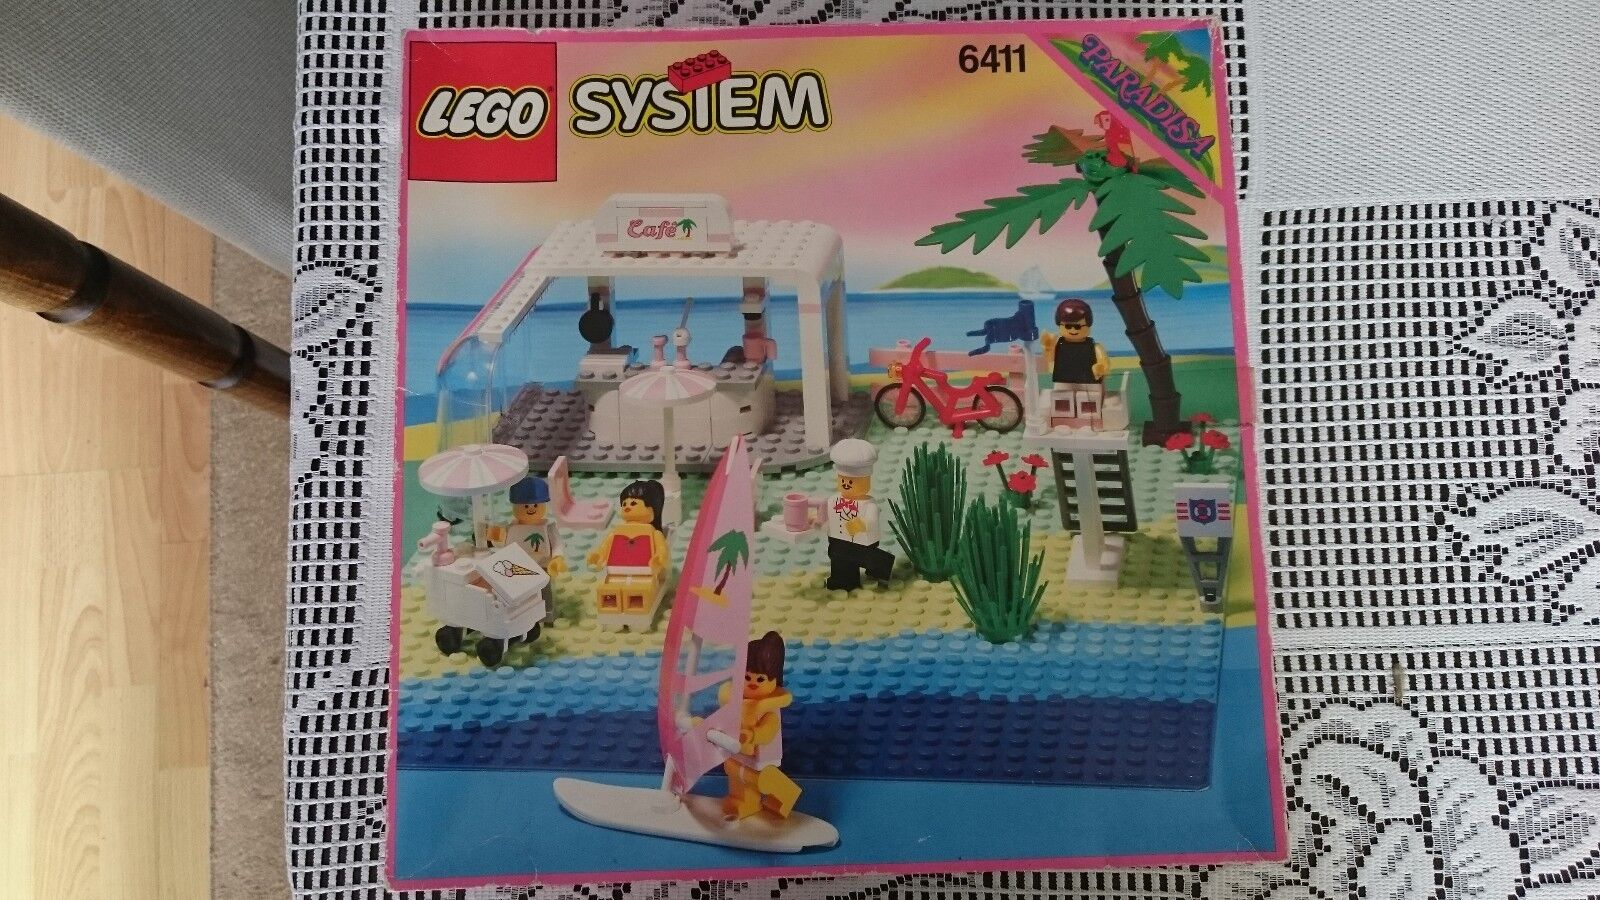 Paradisa Lego 6411 Sand Dollar Cafe Set with Minifigures 100% complete